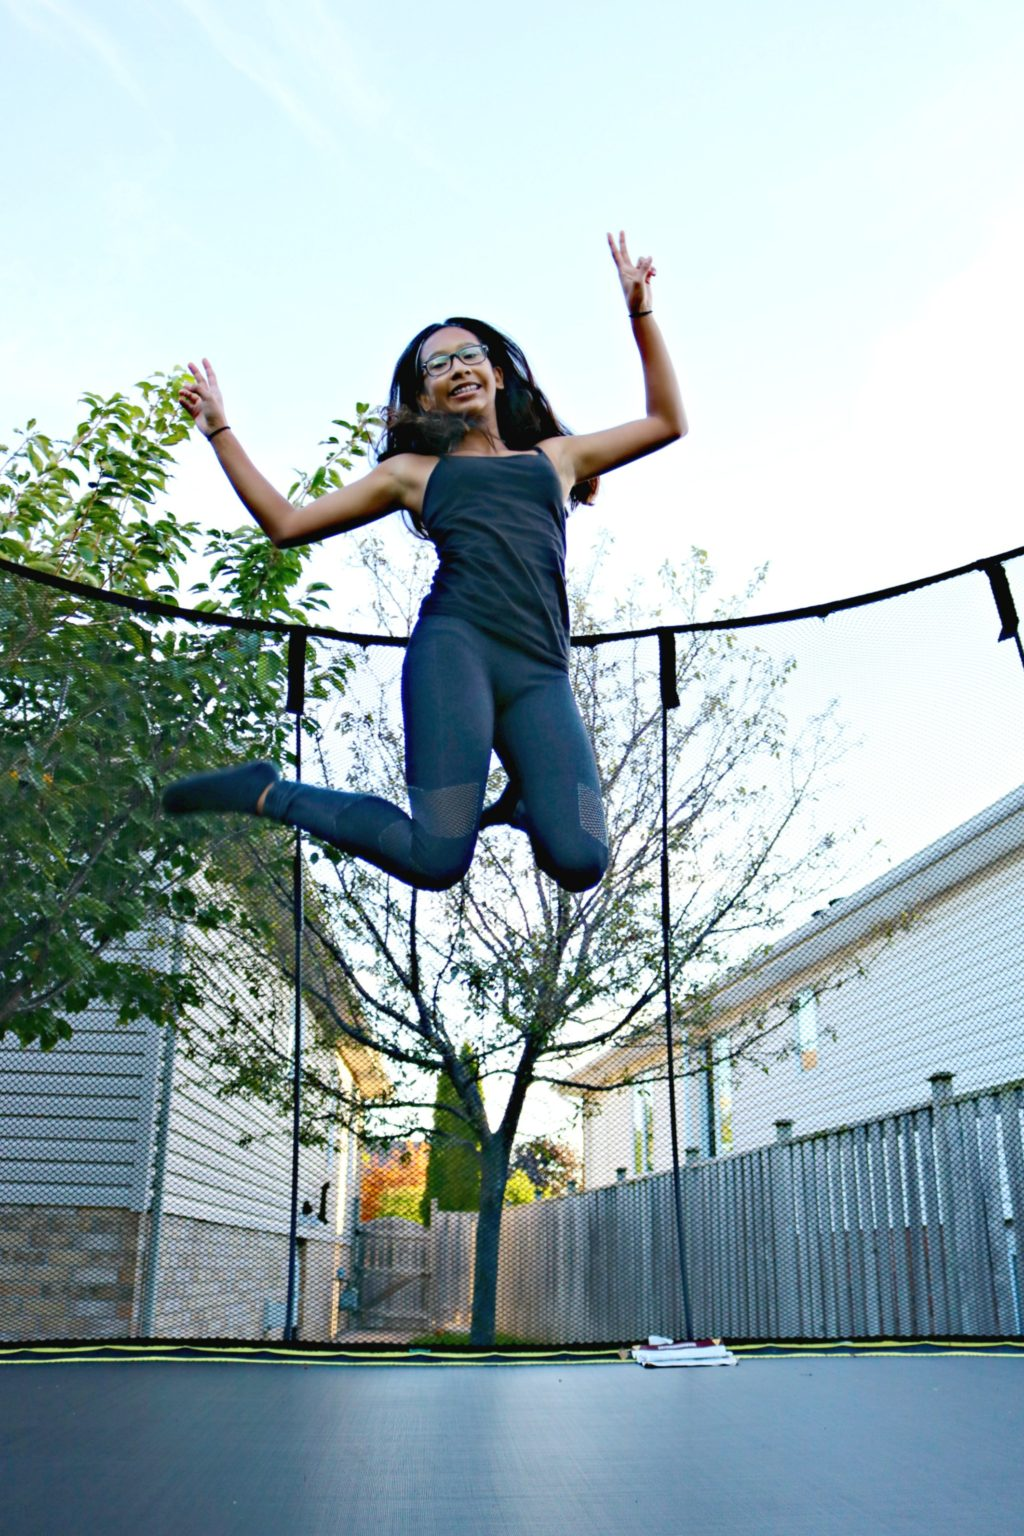 A girl jumps on a trampoline, her legs are both up and she's giving the peace sign.